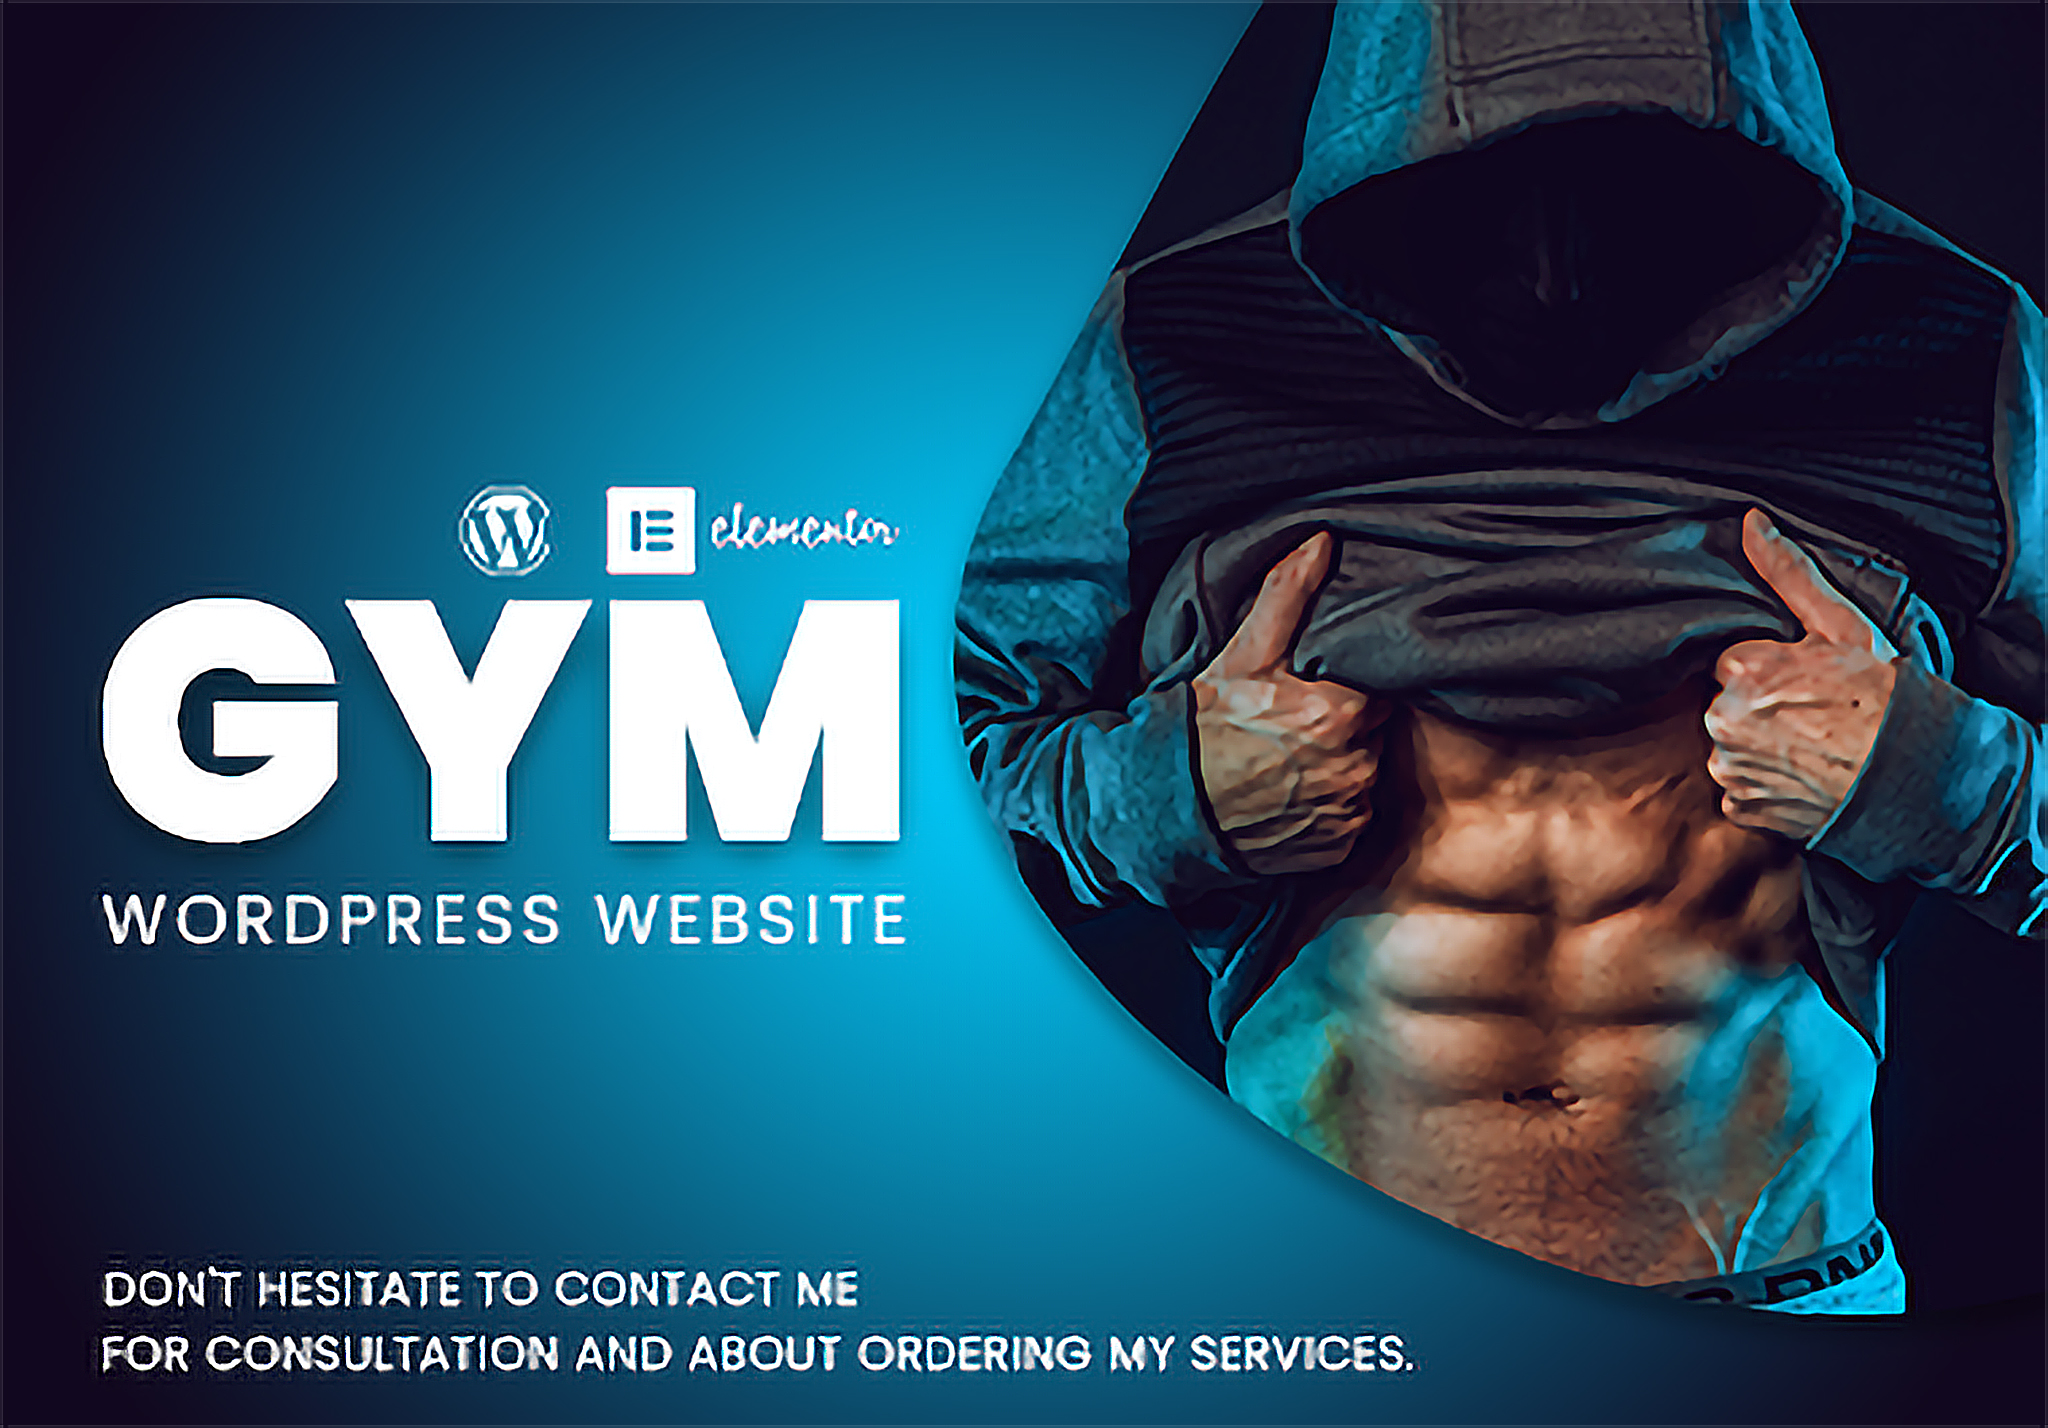 GYM wordpress website using elementor pro